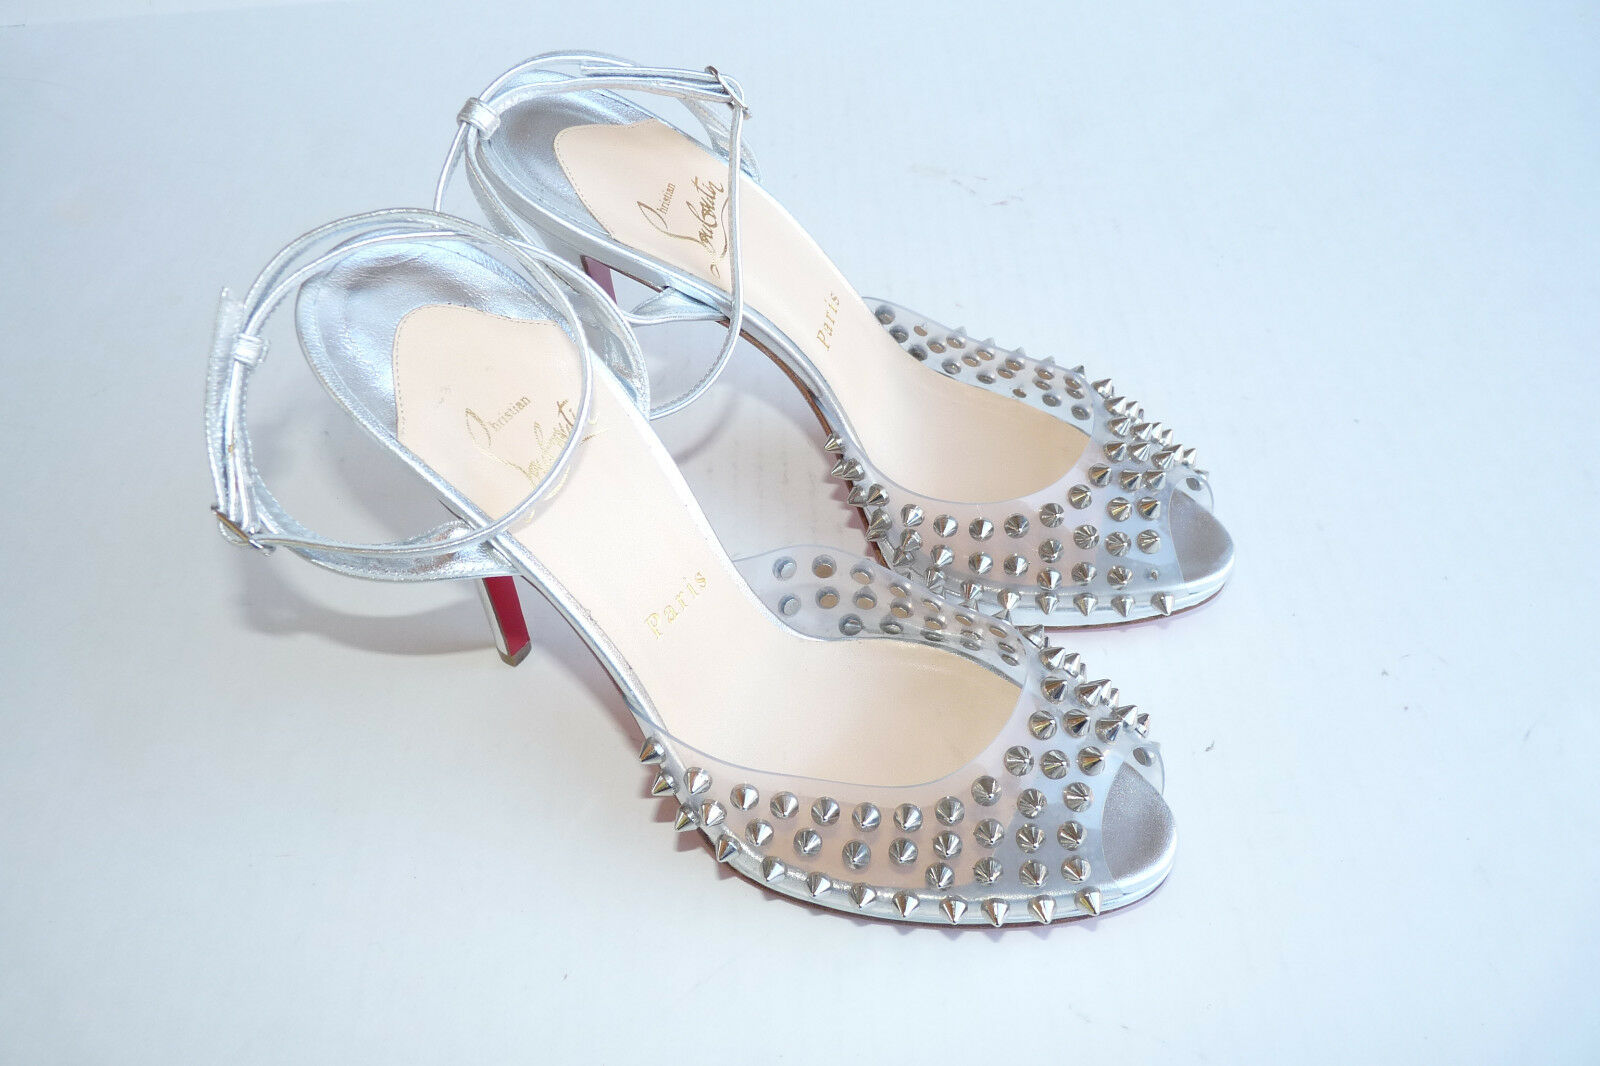 Christian Louboutin SPIKE Silver Ankle Strap Heels Sandals shoes Sz 38.5 8 m